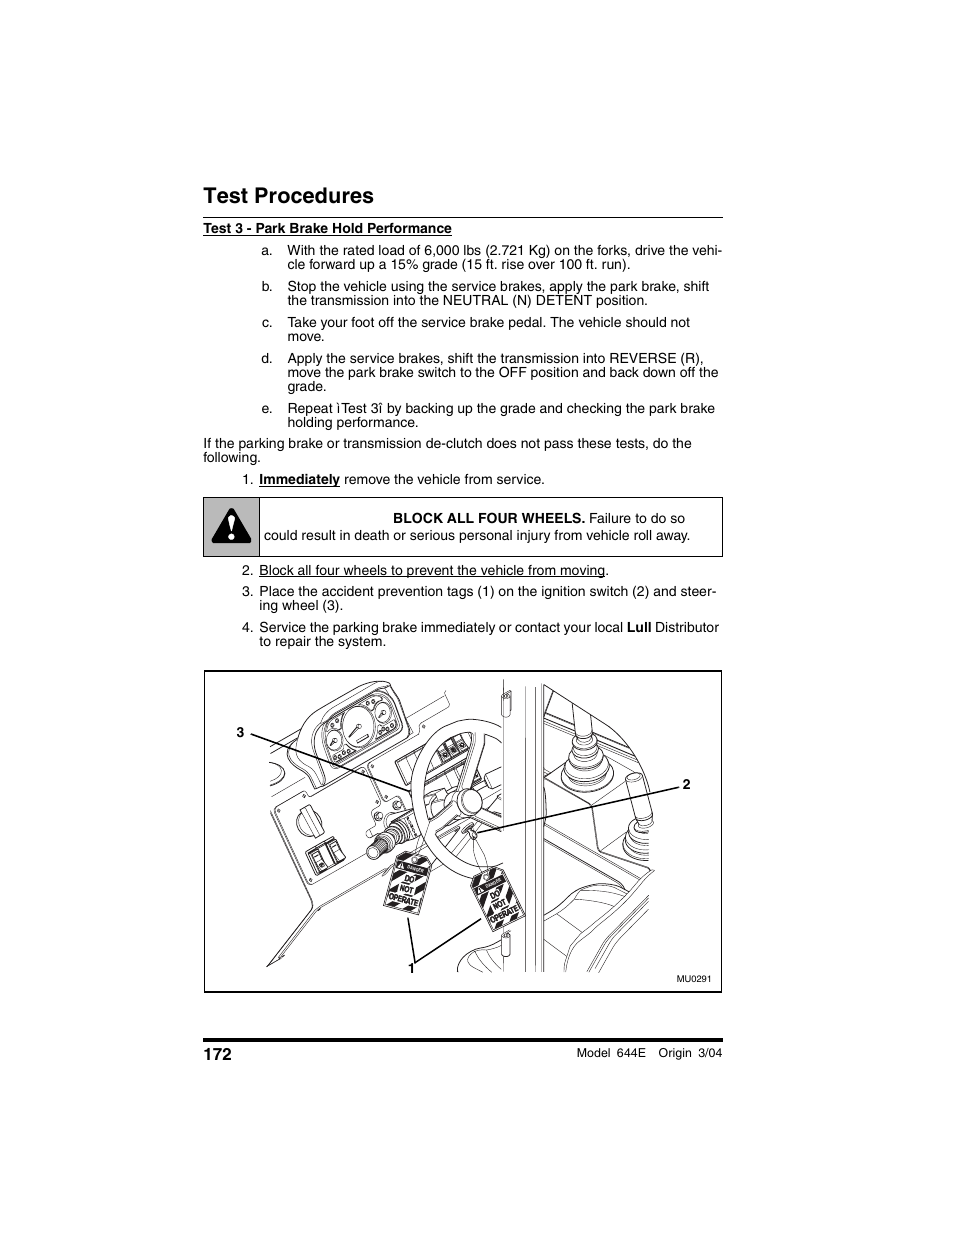 Immediately remove the vehicle from service, Warning, Test procedures | Lull  644E-42 Operation Manual User Manual | Page 174 / 200